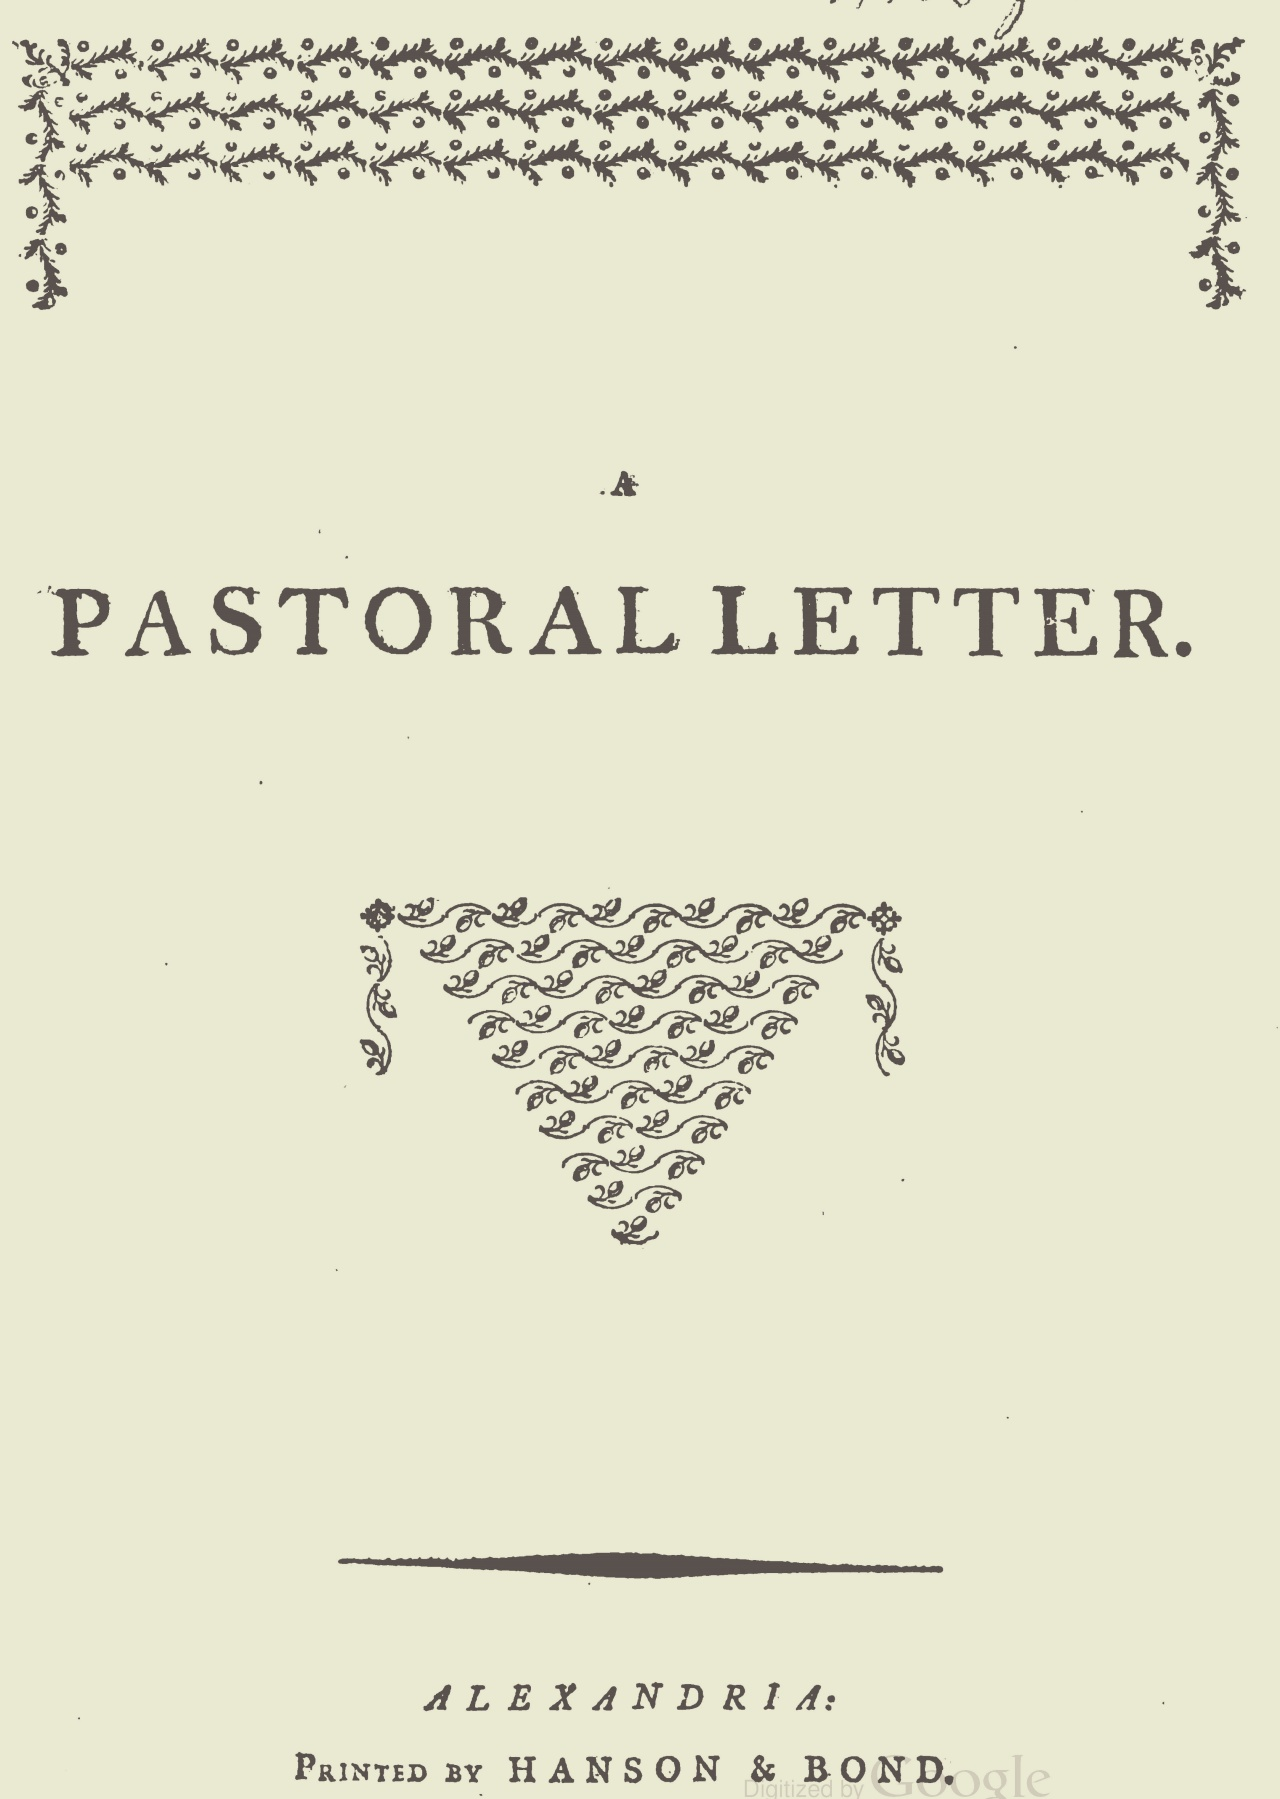 Muir, James, A Pastoral Letter Title Page.jpg